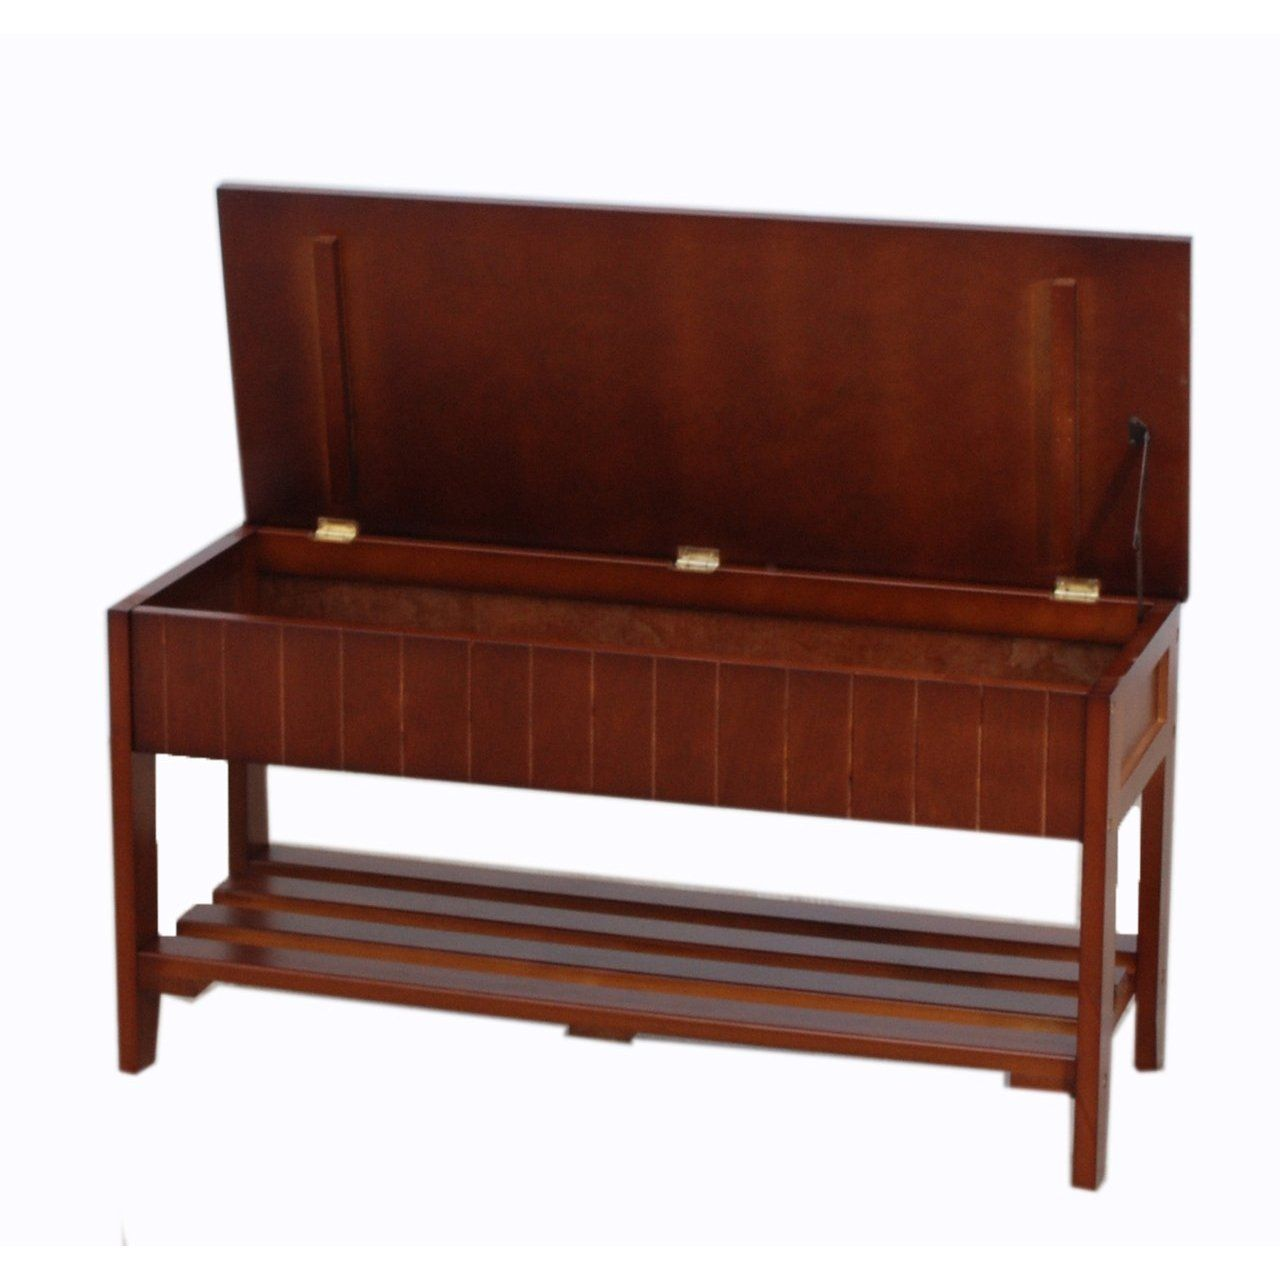 FurnitureMaxx Solid Wood Shoe Bench With Storage : Benches